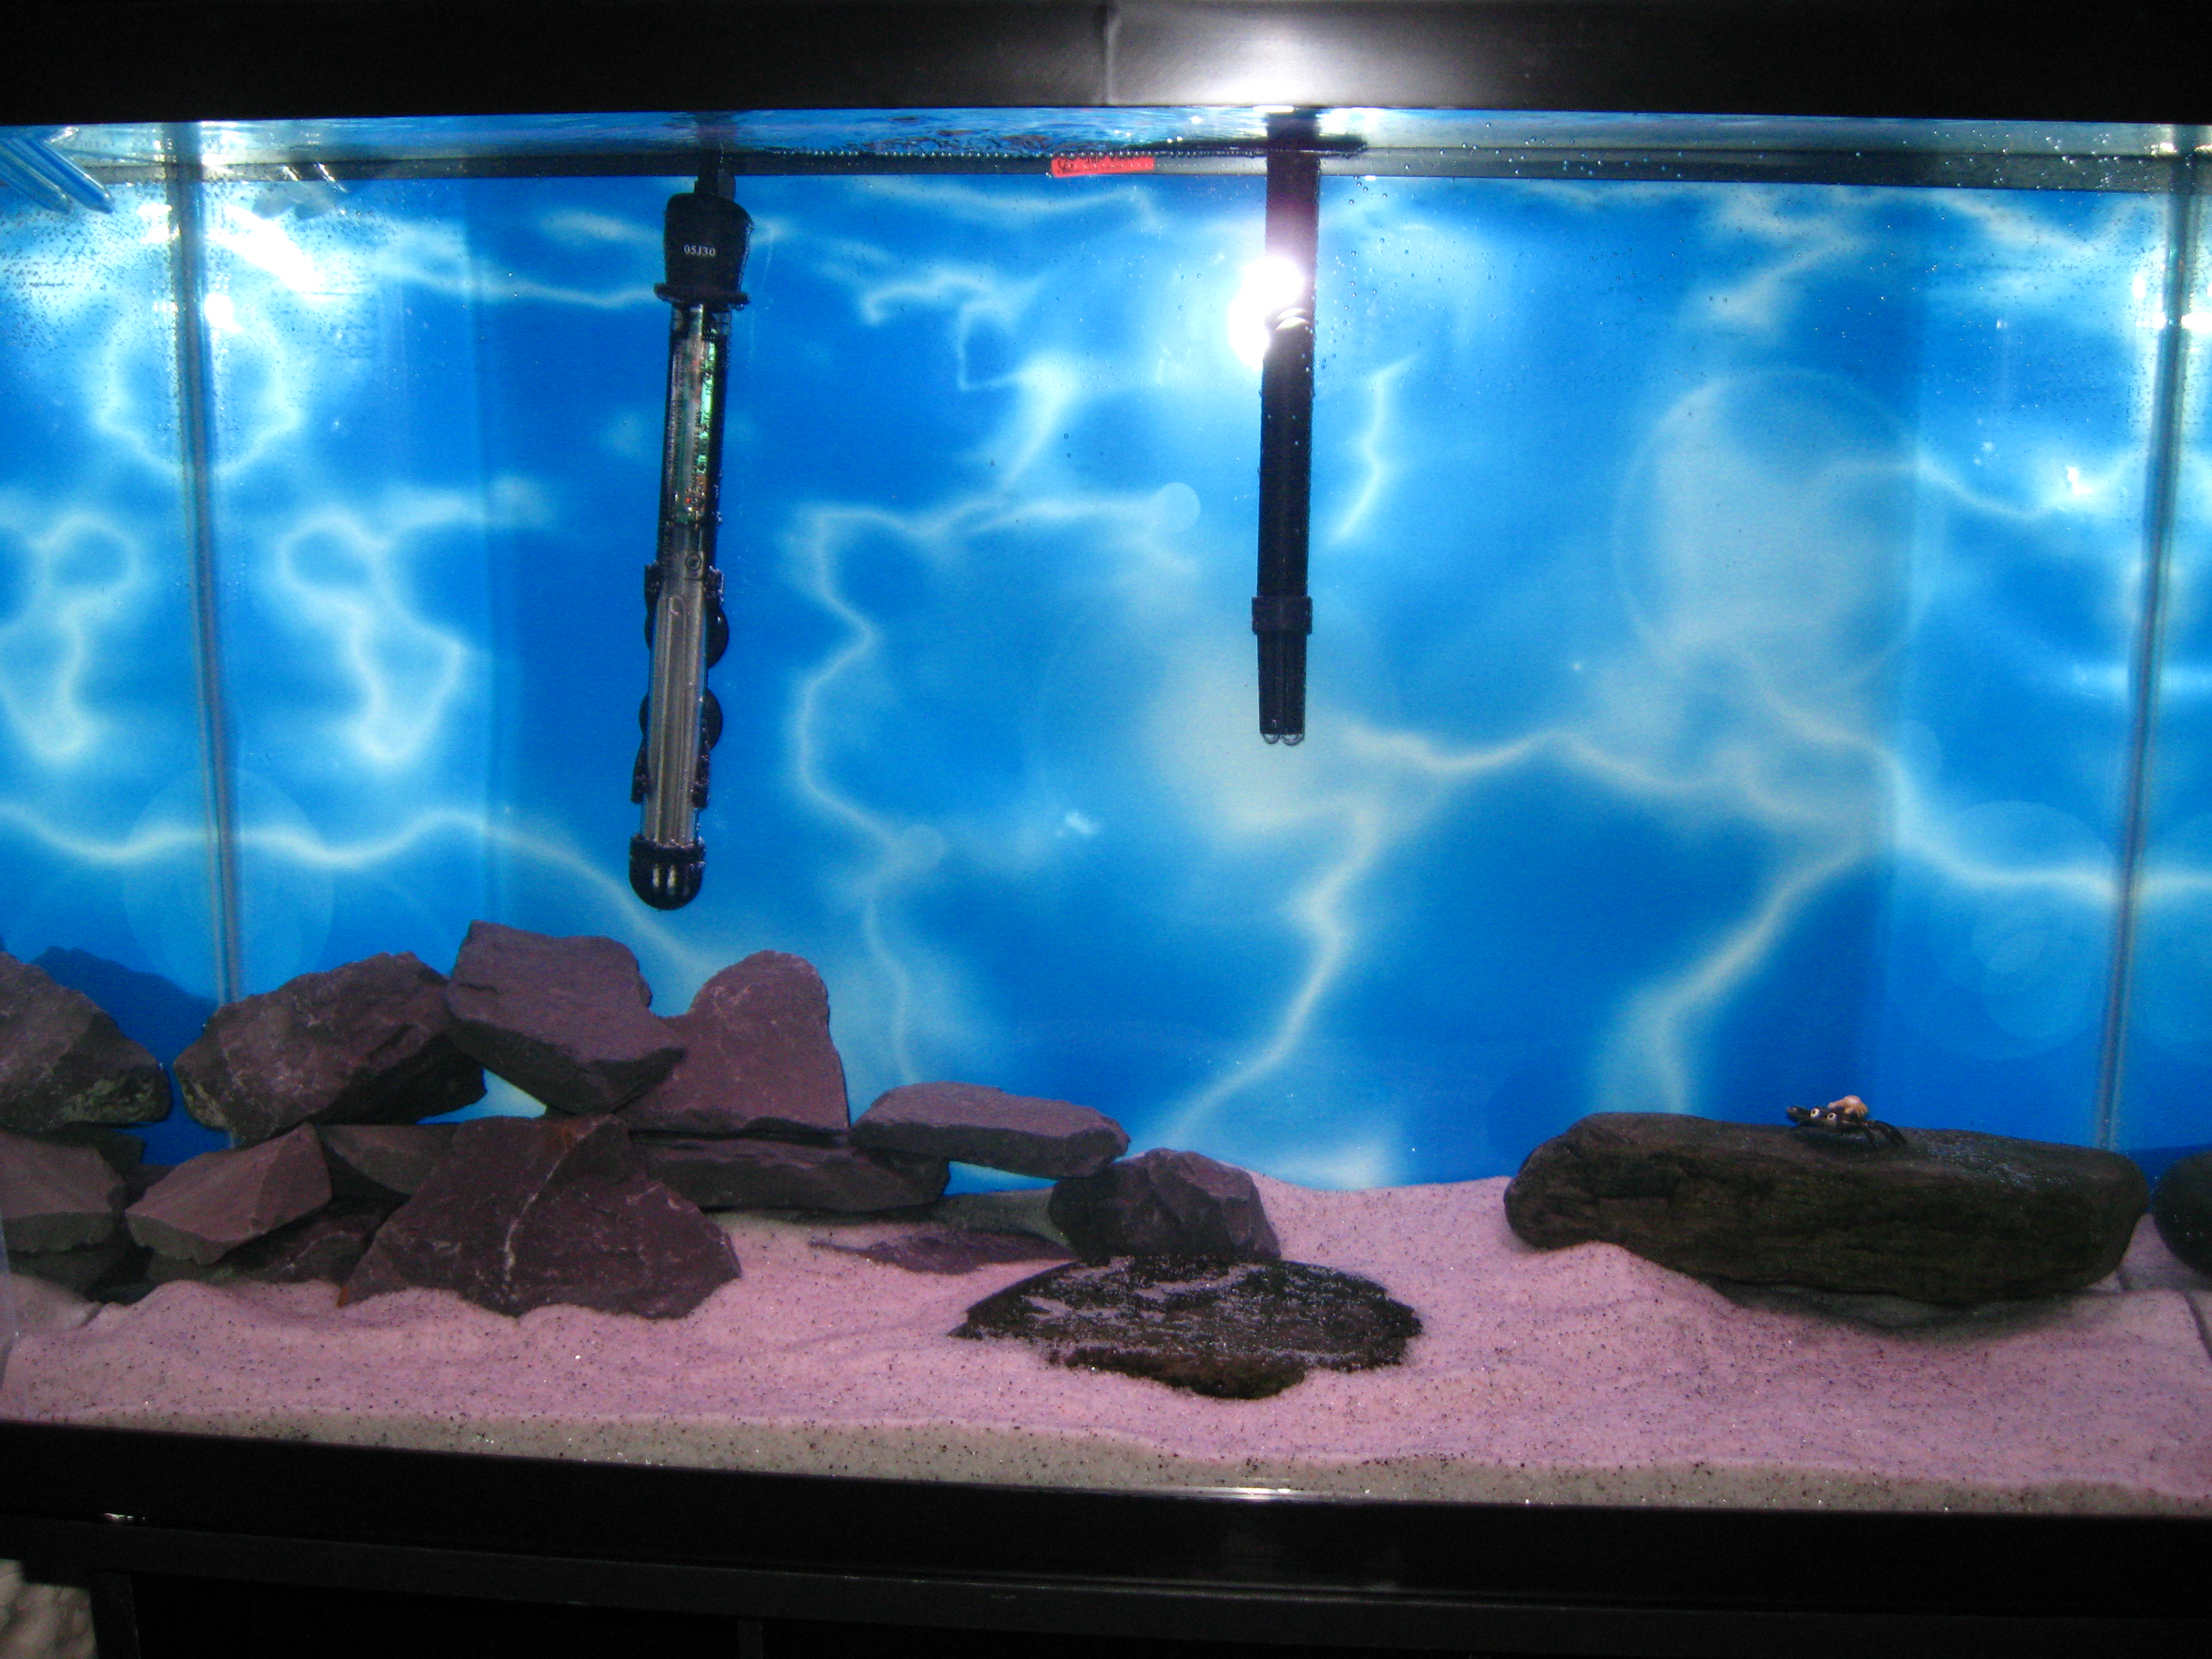 Fish tank 30x12x18 30 gallon fish tank image galleries for Fish for 2 gallon tank